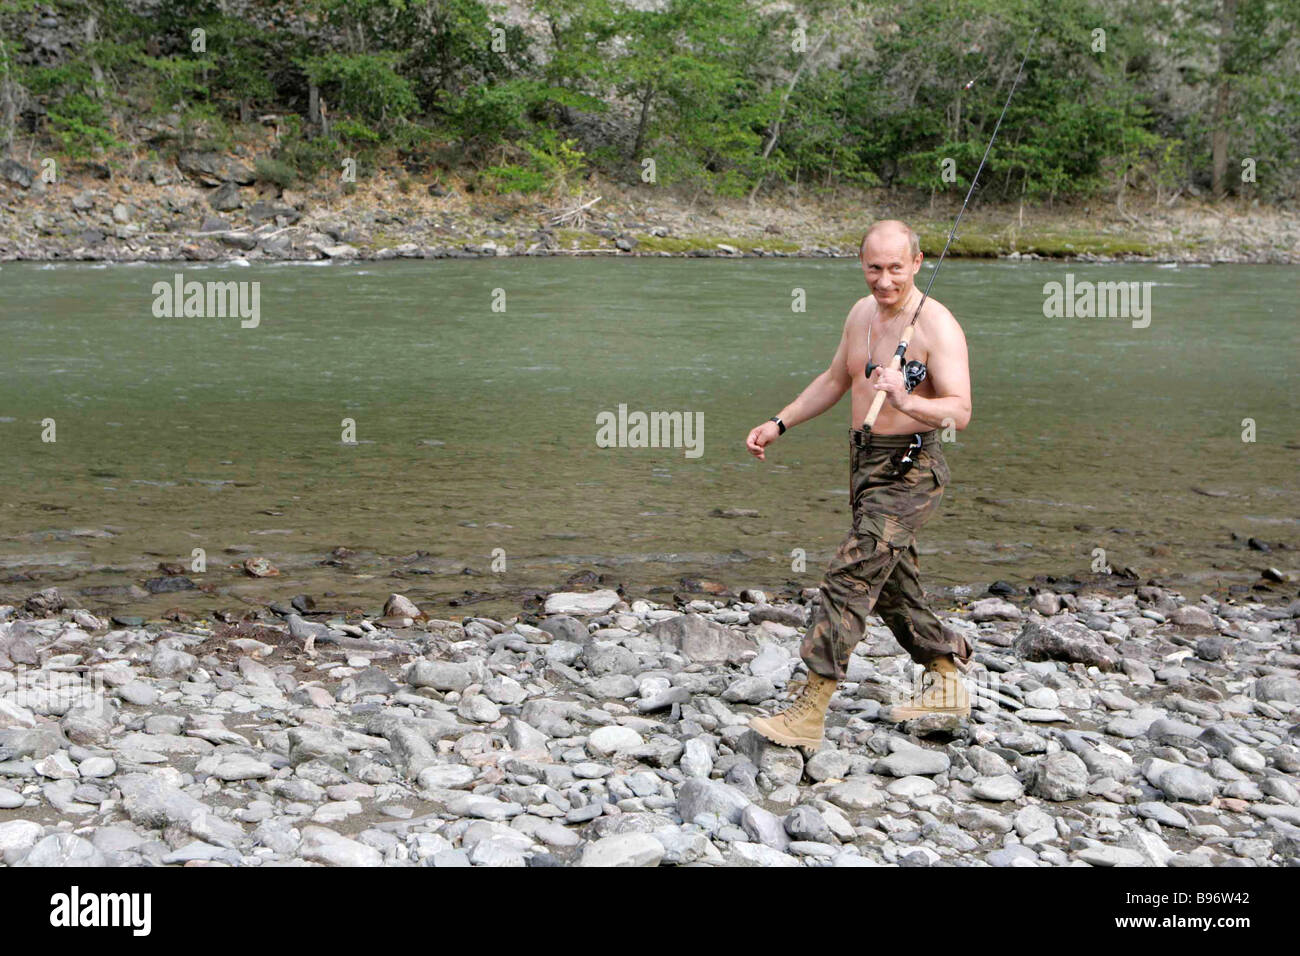 Russian President Vladimir Putin fishing on the Khemchik River in the Republic of Tuva August 15 2007 - Stock Image